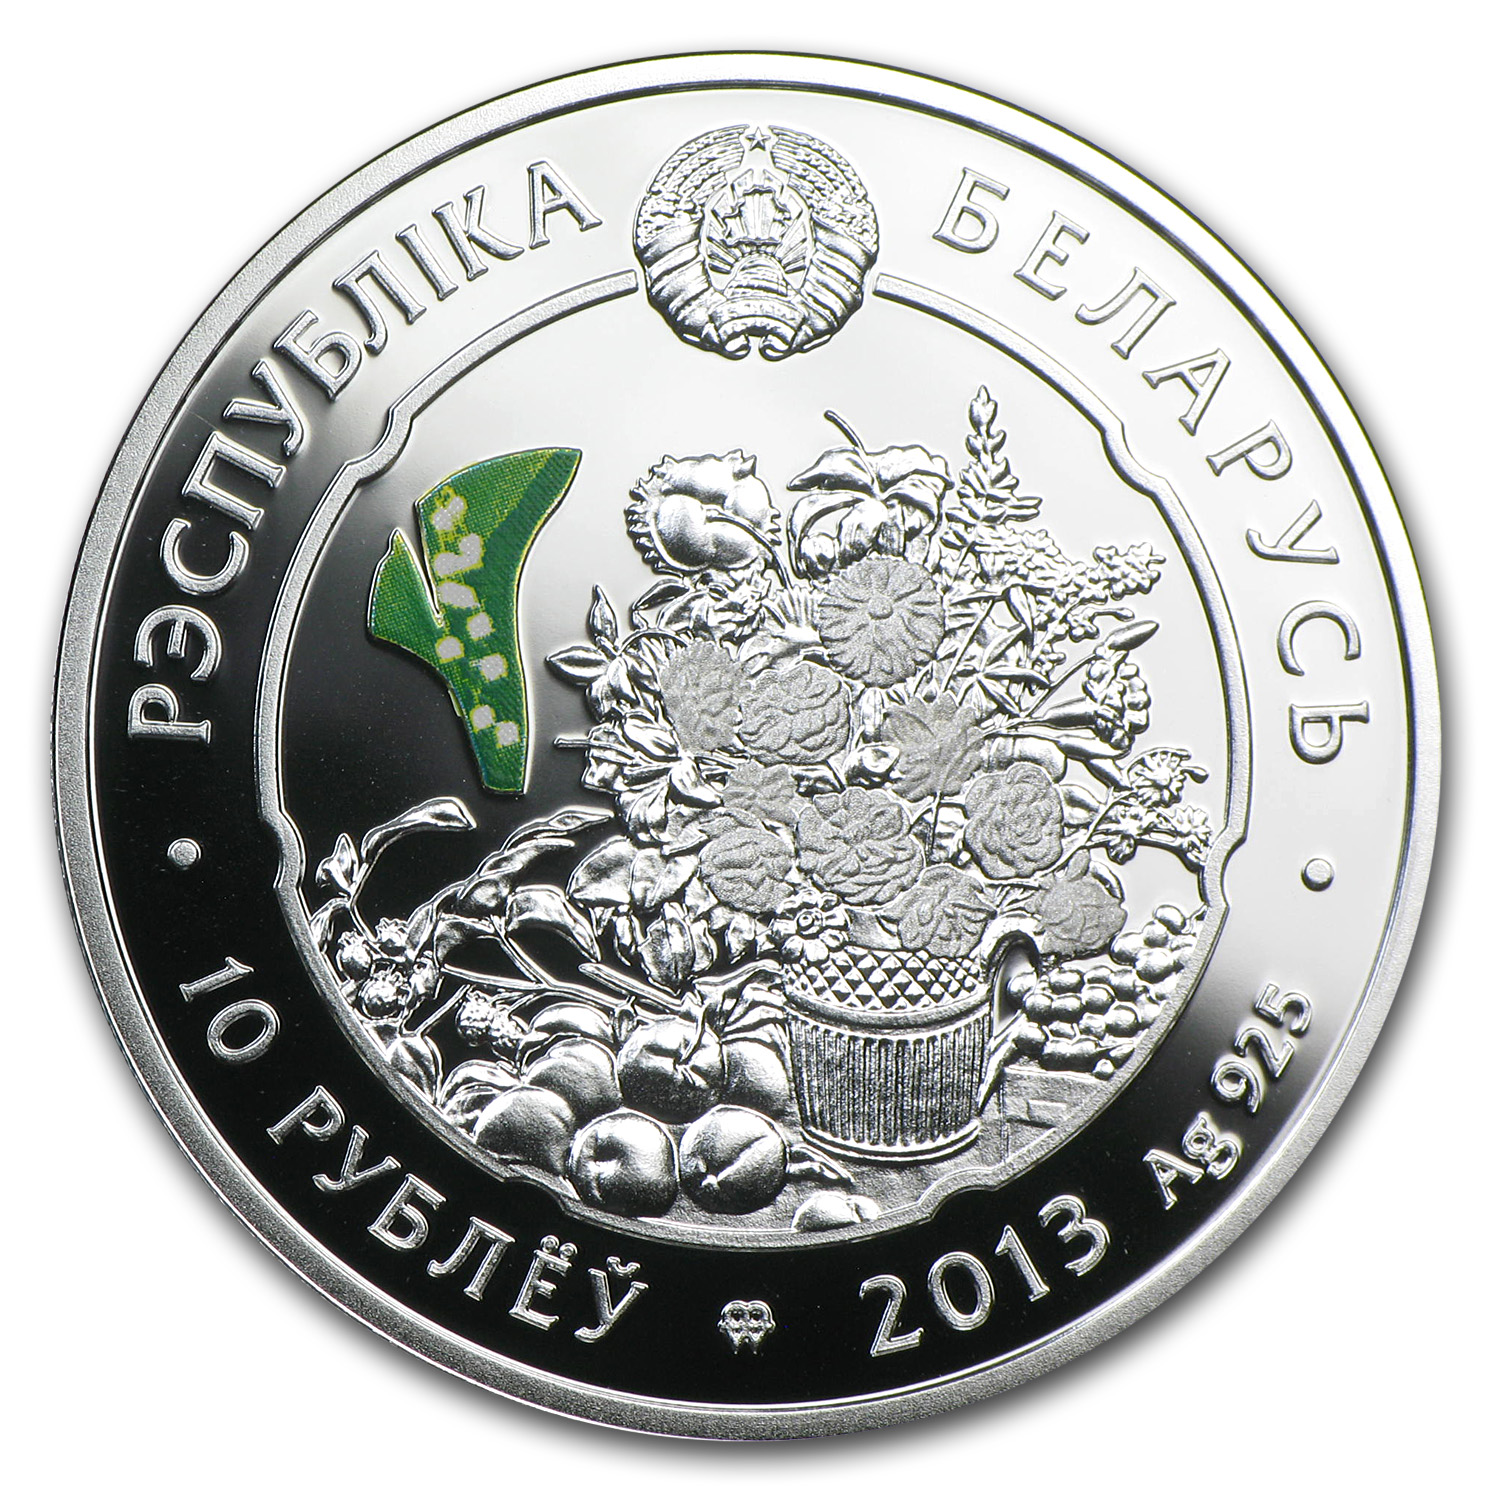 Belarus 2013 Silver Proof Under the Charm of Flowers - Pansy